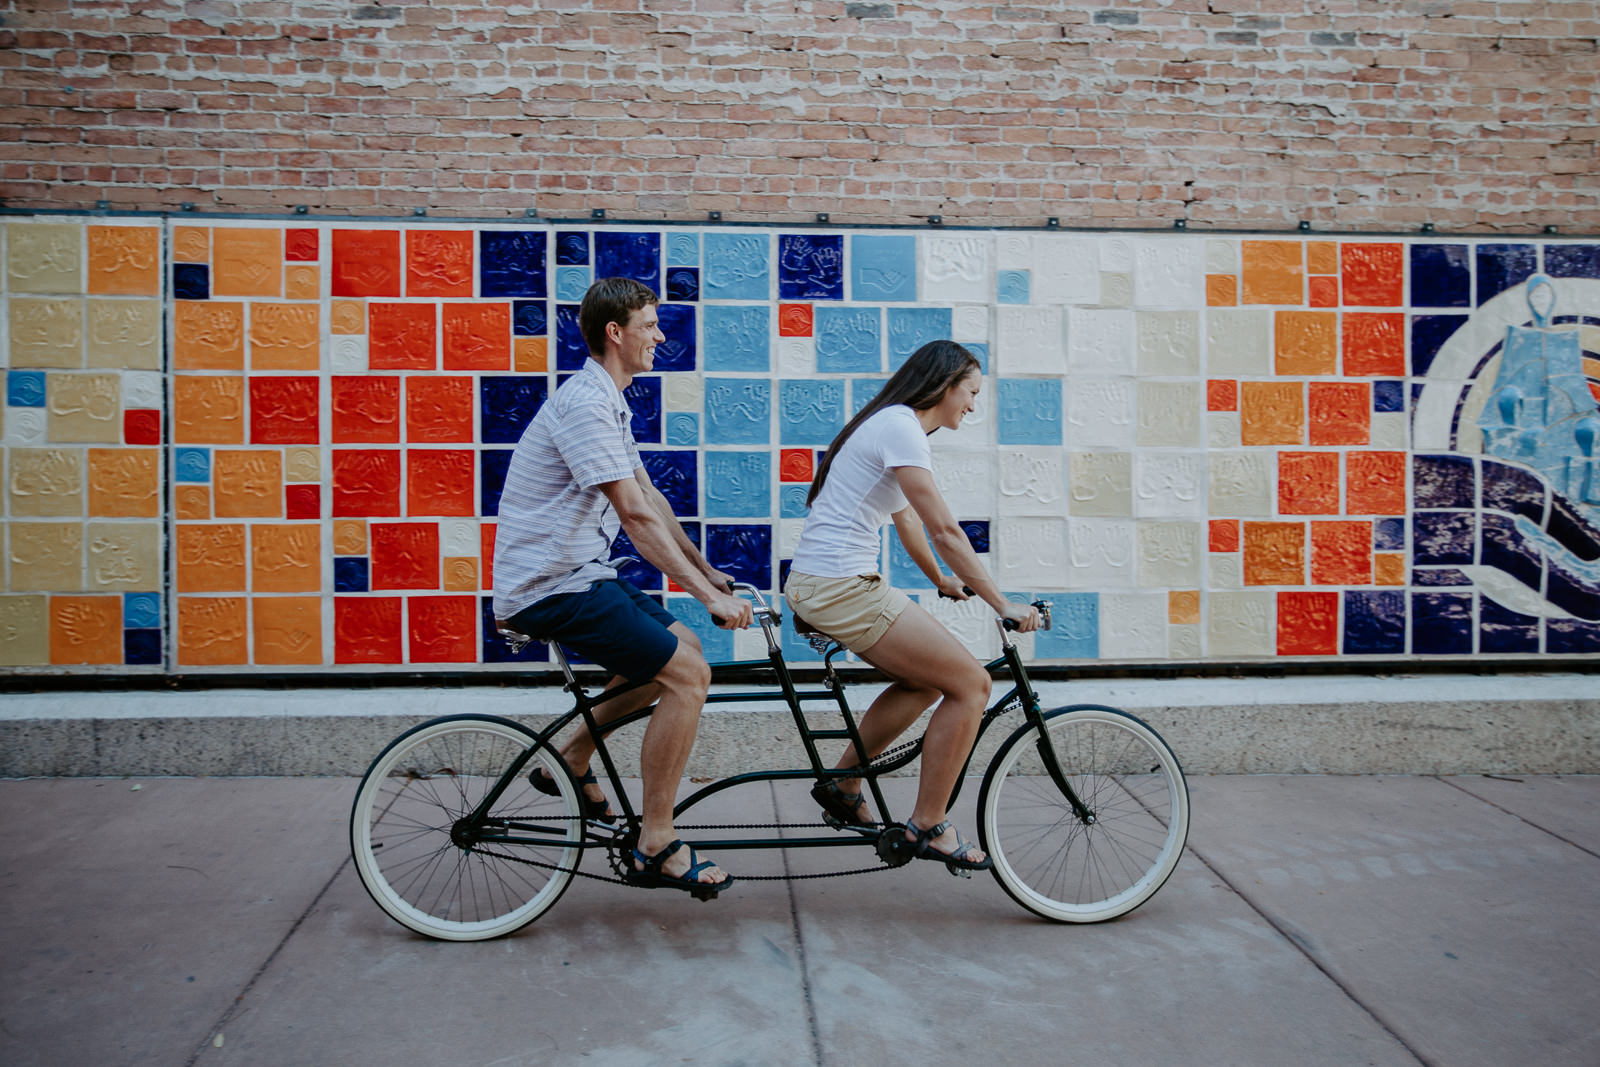 Engaged couple riding a tandem bike laughing with colorful wall